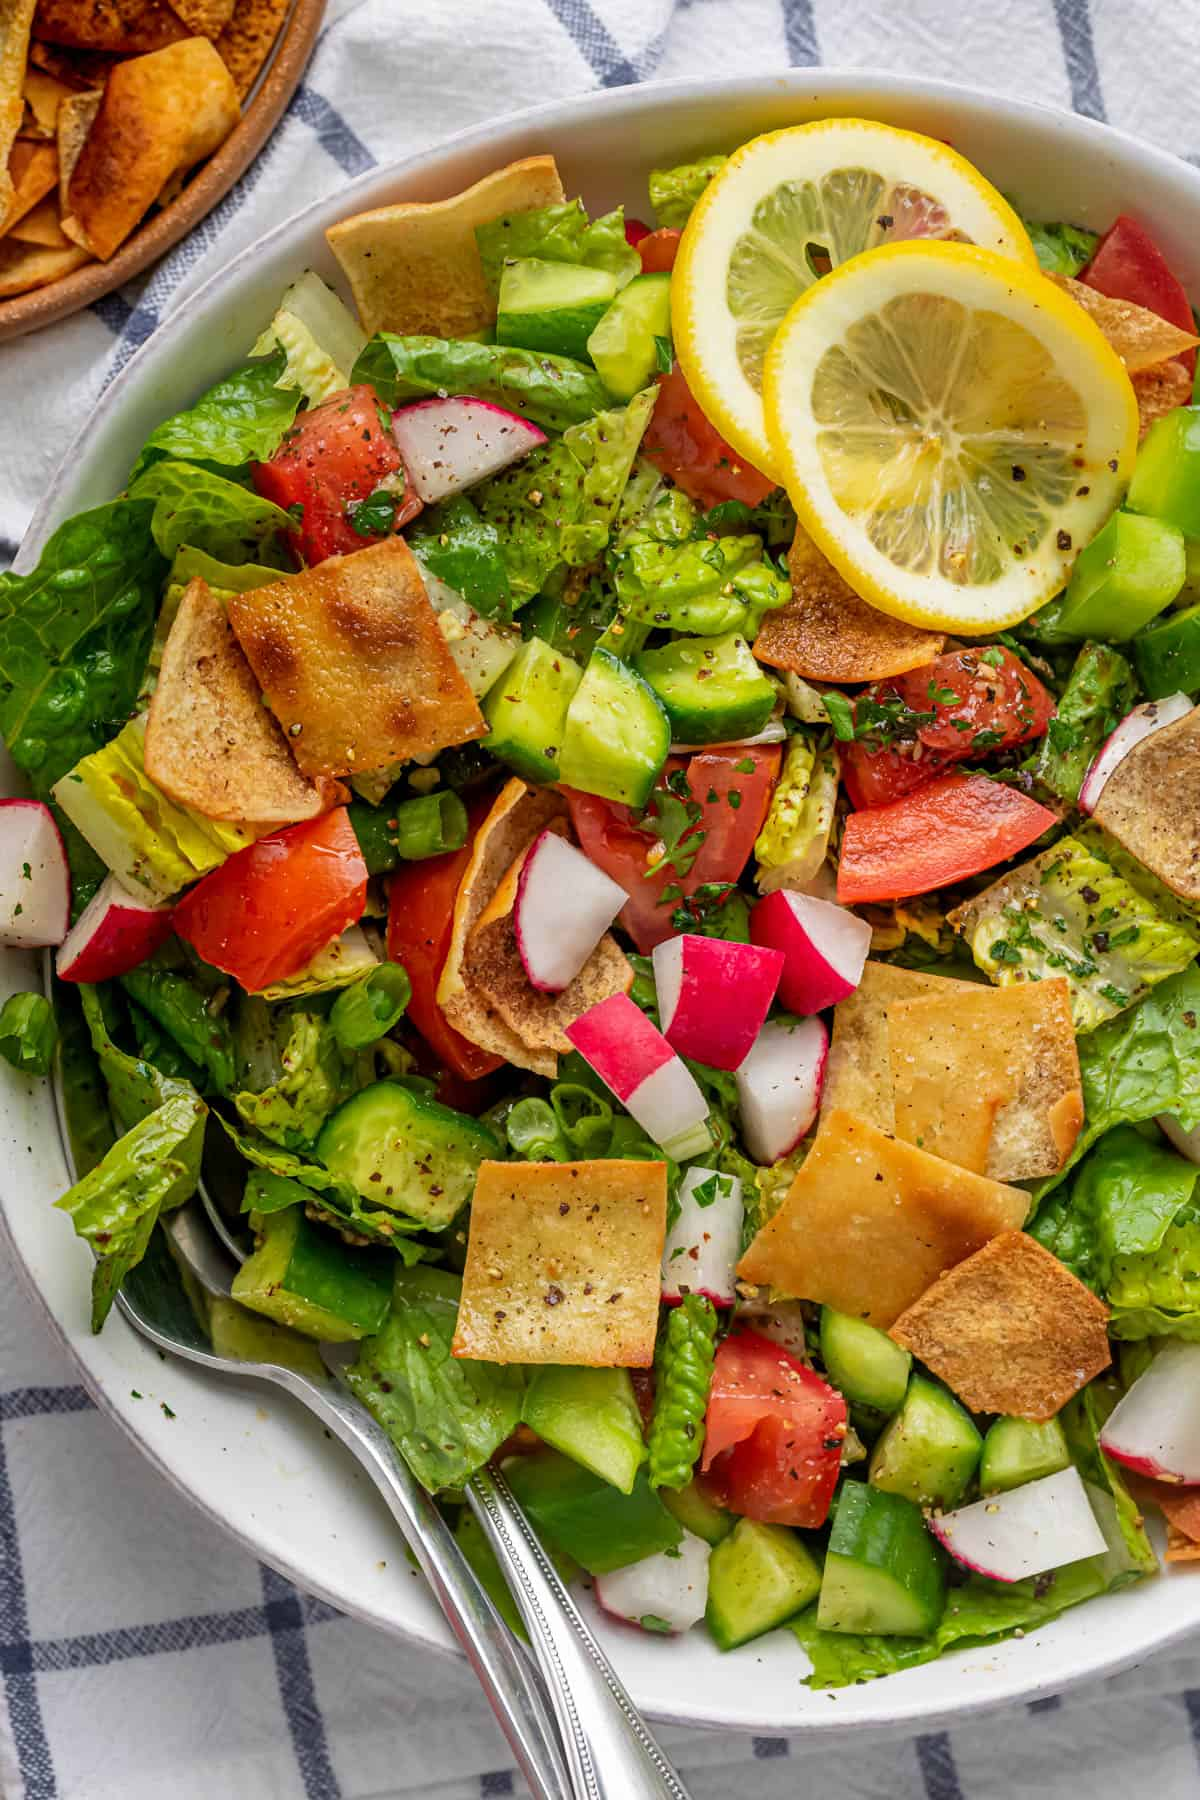 Close up shot of the final fattoush salad with fork and spoon in the bowl for serving